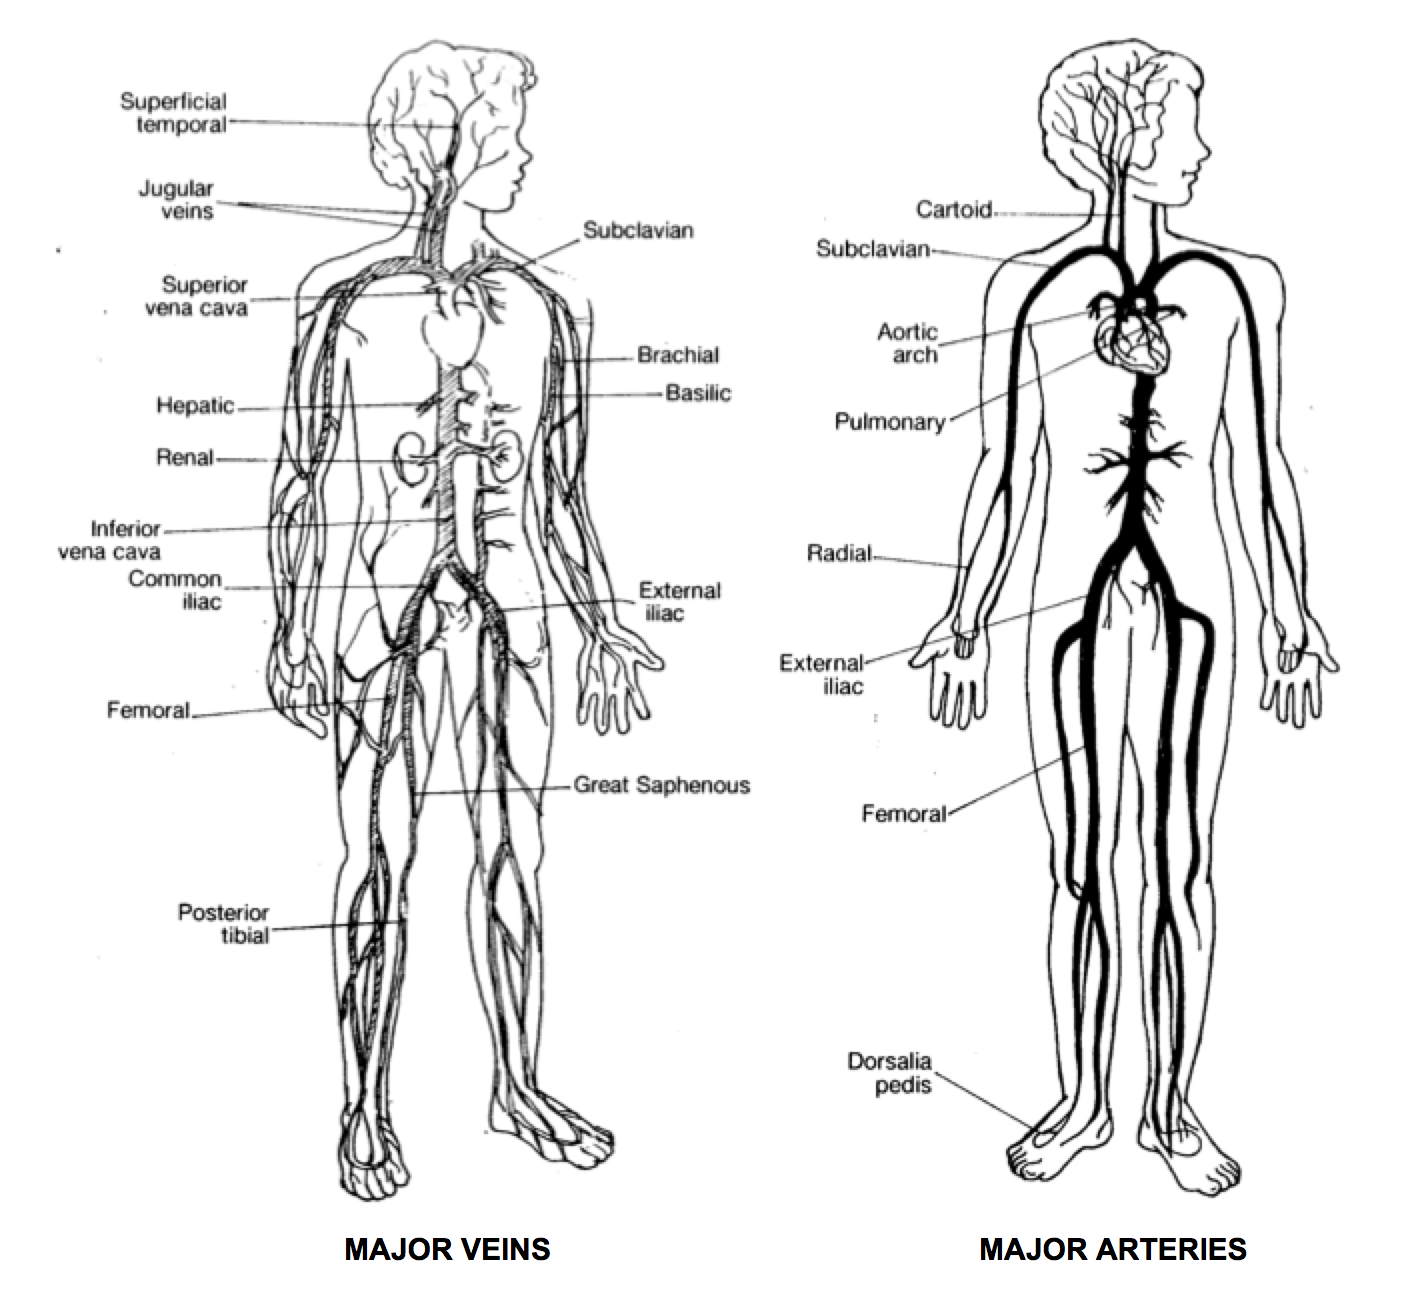 major veins and arteries in the human body